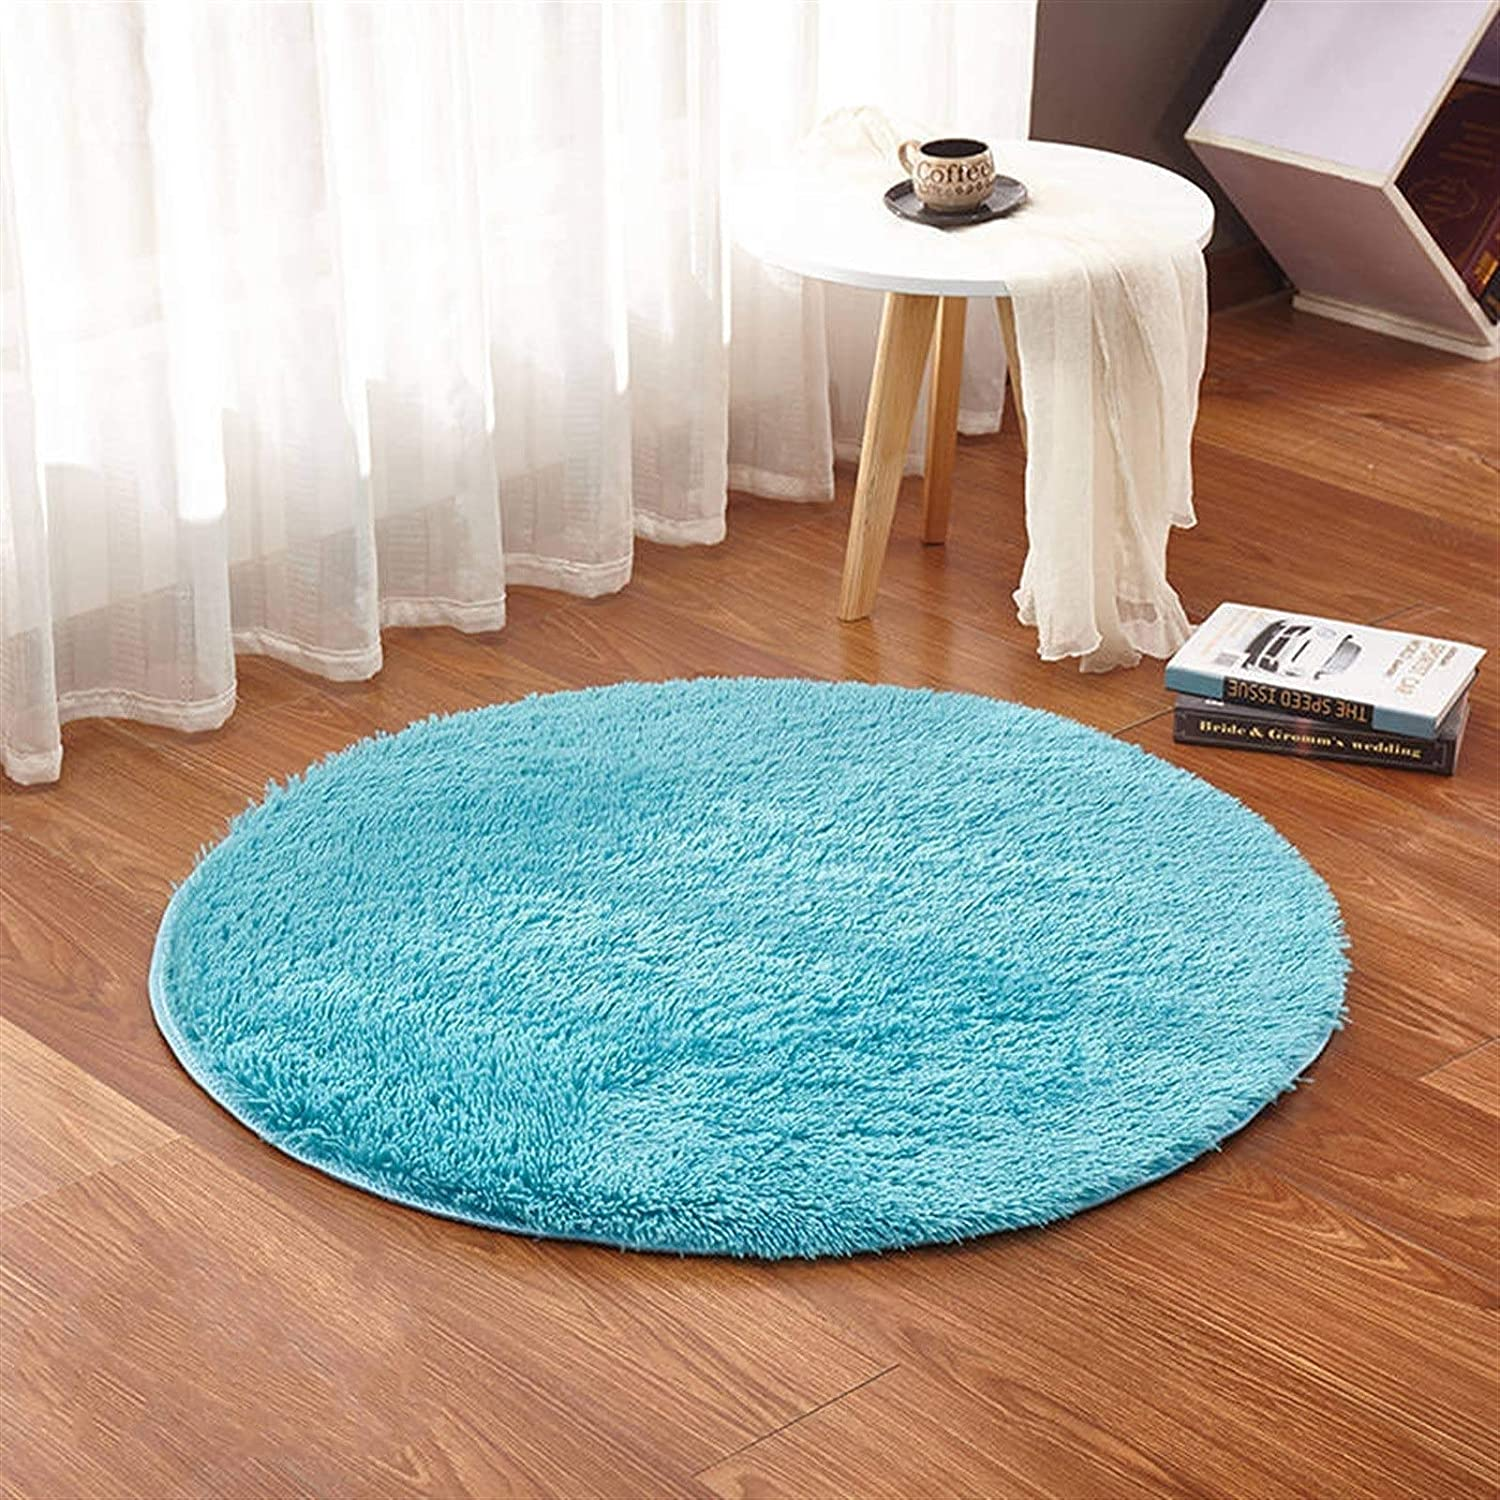 SHENYF-Hua Fluffy Round Rug Beauty products Carpets Solid San Diego Mall Area Chair Mat for